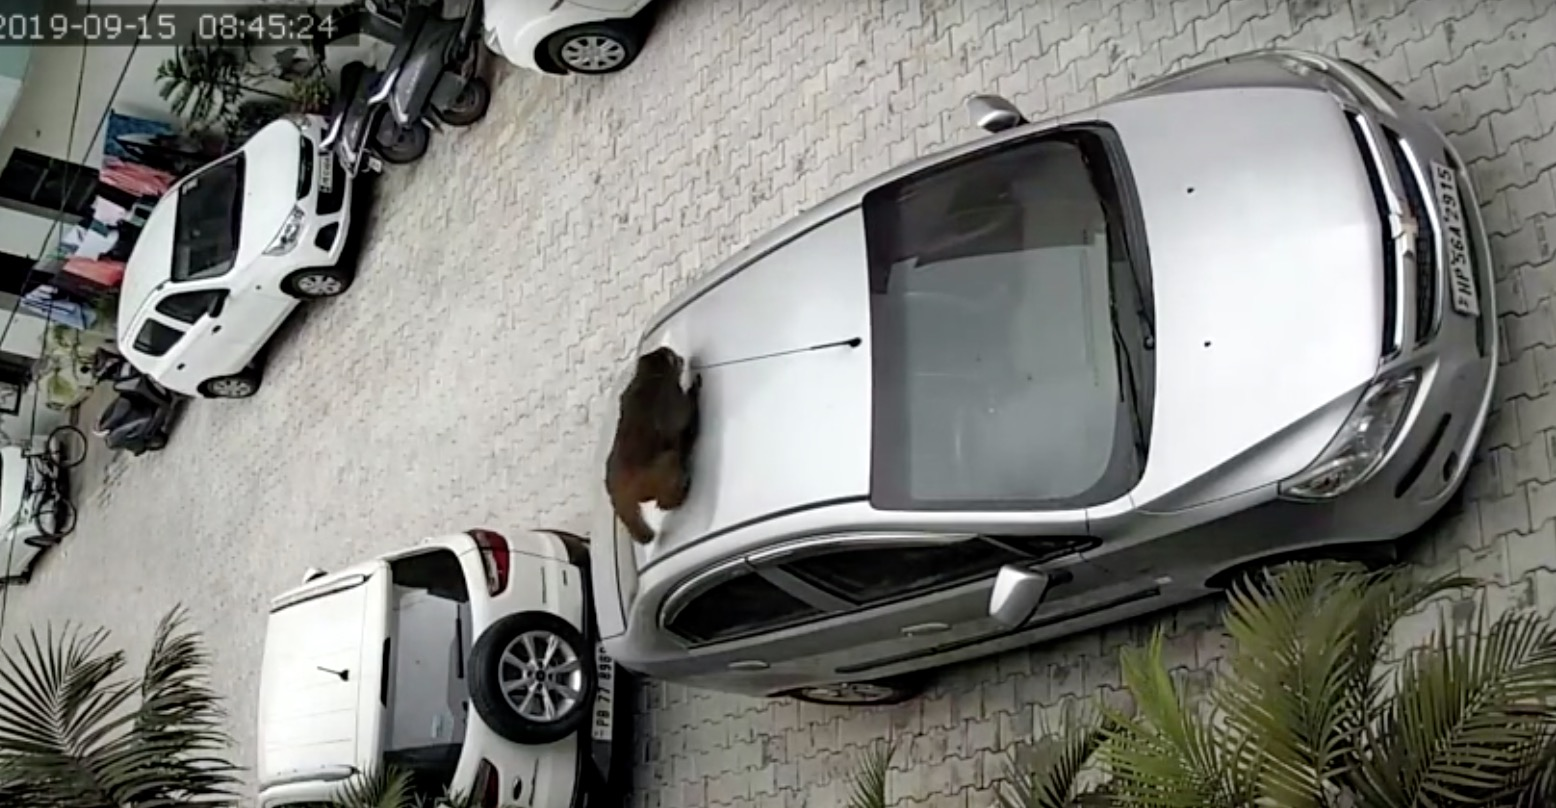 Guy Is Deeply Confused By The Huge Dent In His Car's Roof Until He Checks His Security Camera - Digg